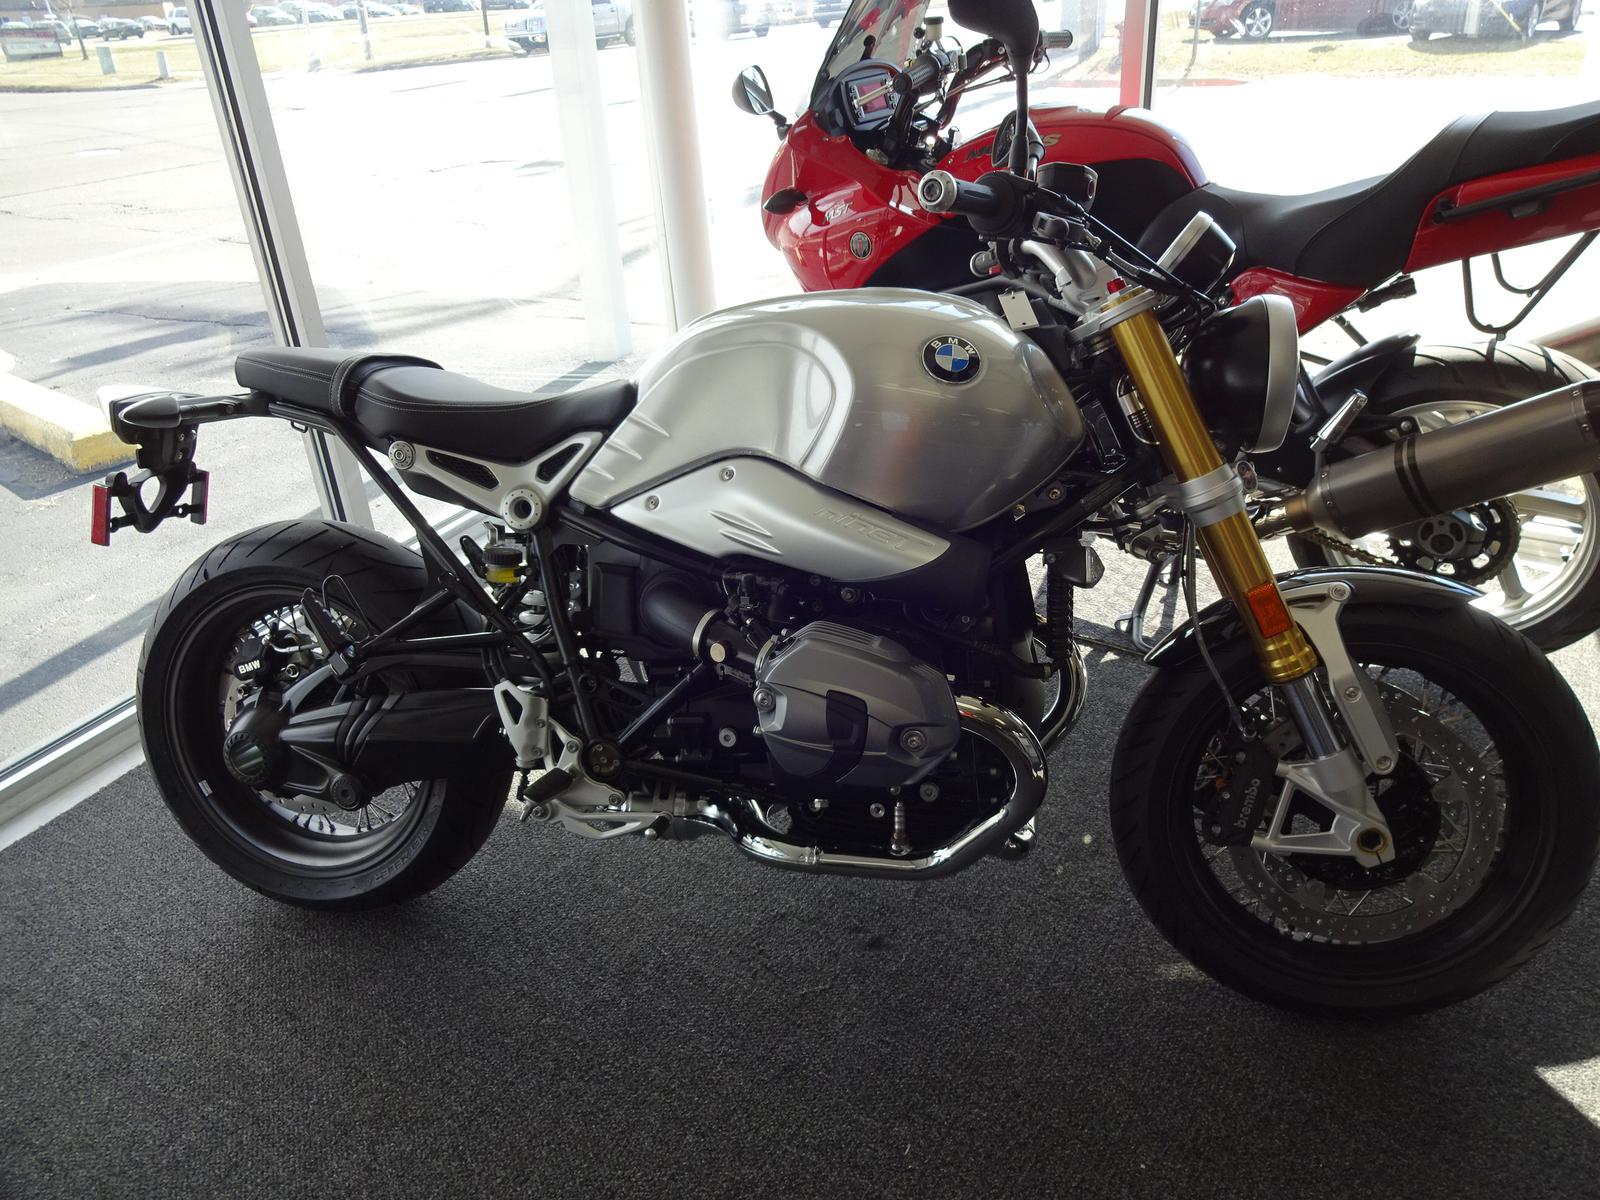 2017 bmw rninet for sale in grand rapids, mi   bmw motorcycles of